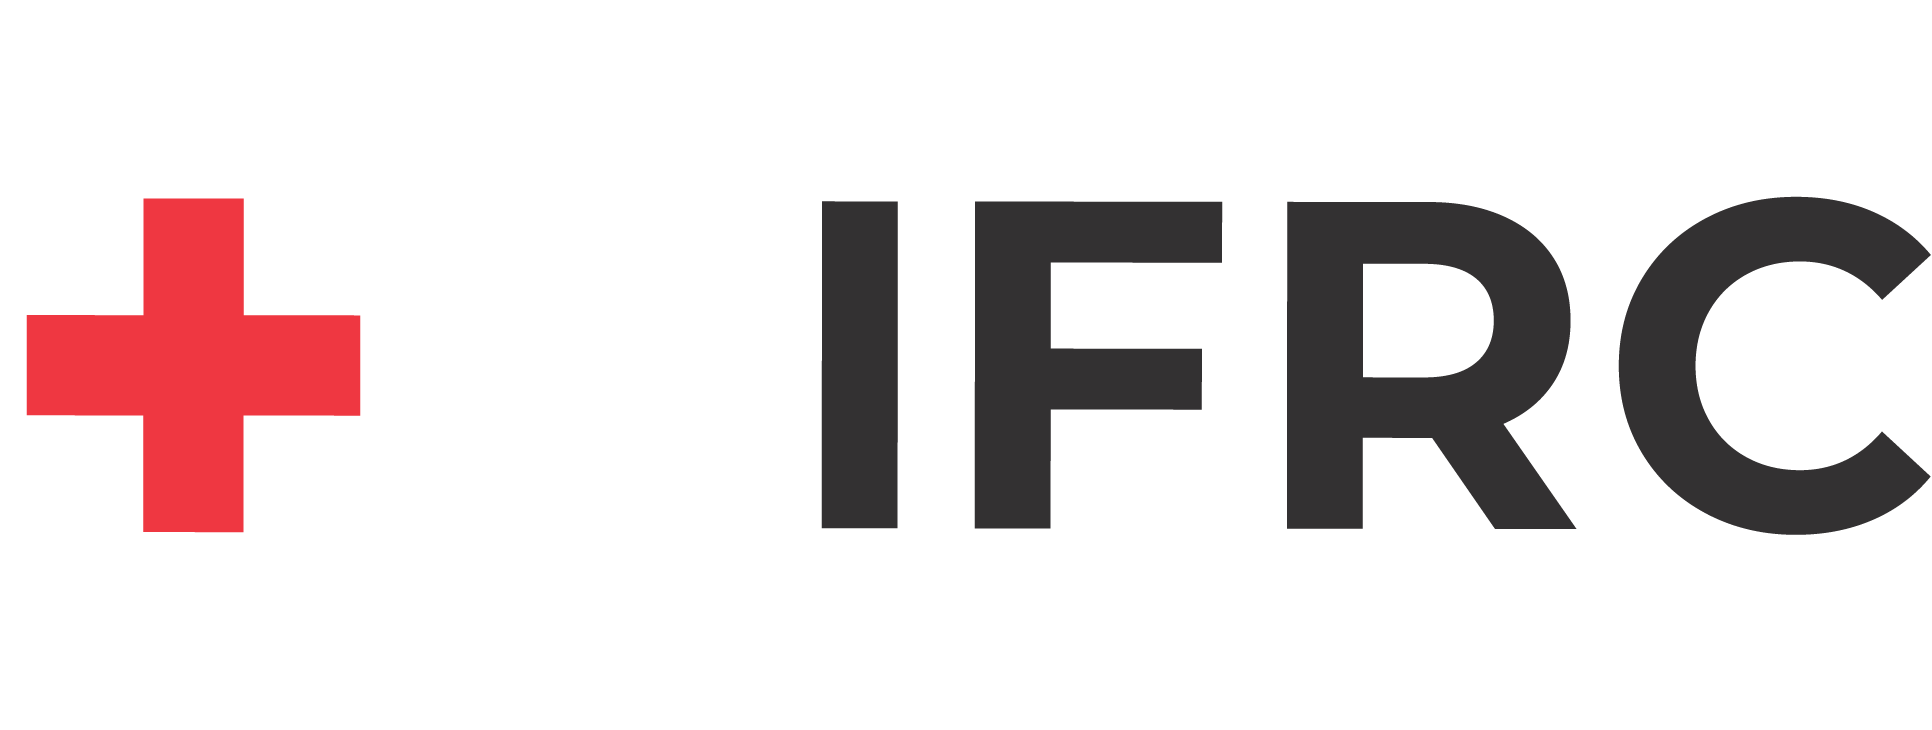 IFRC logo, International Federation of the Red Cross and Red Crescent Societies